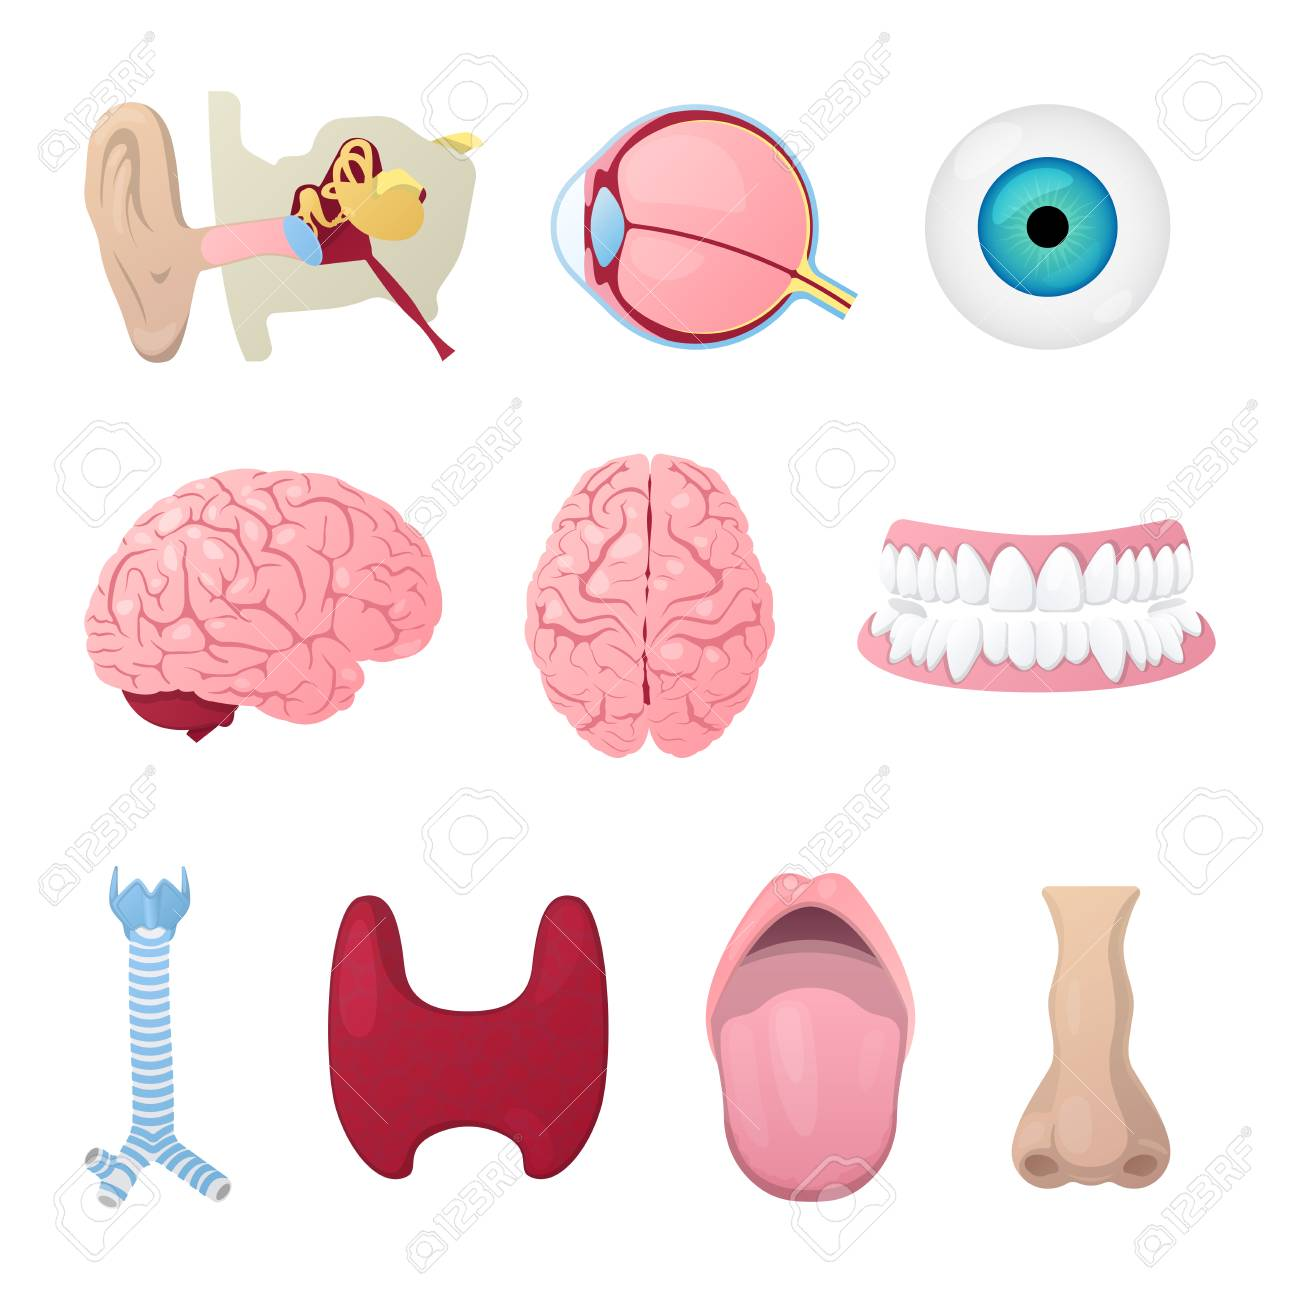 Anatomy Medical Poster With Head Organs Eye, Brain, Nose And ...